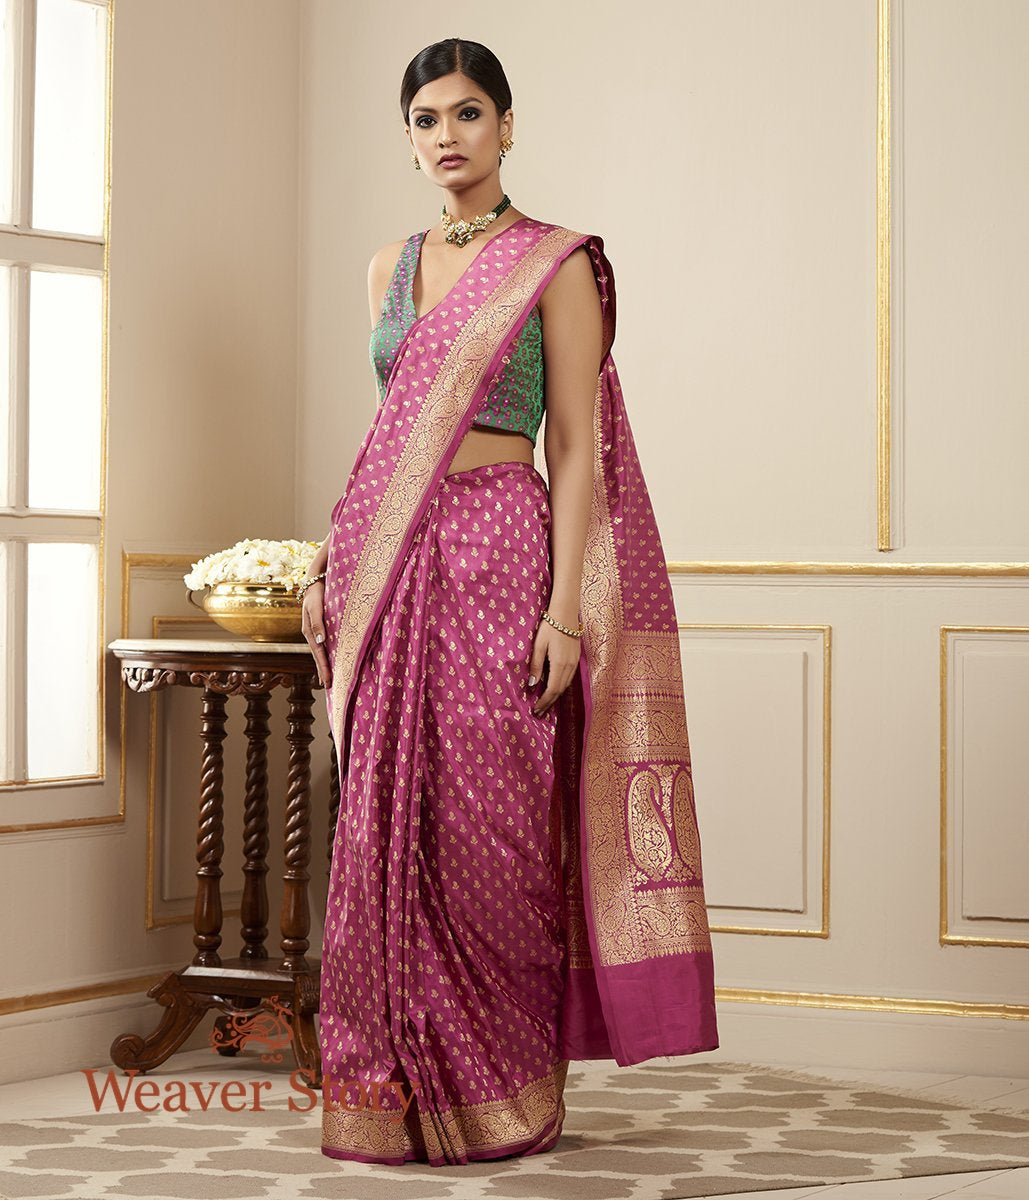 Handwoven Rose Pink Pure Silk Saree with Paisley Booti